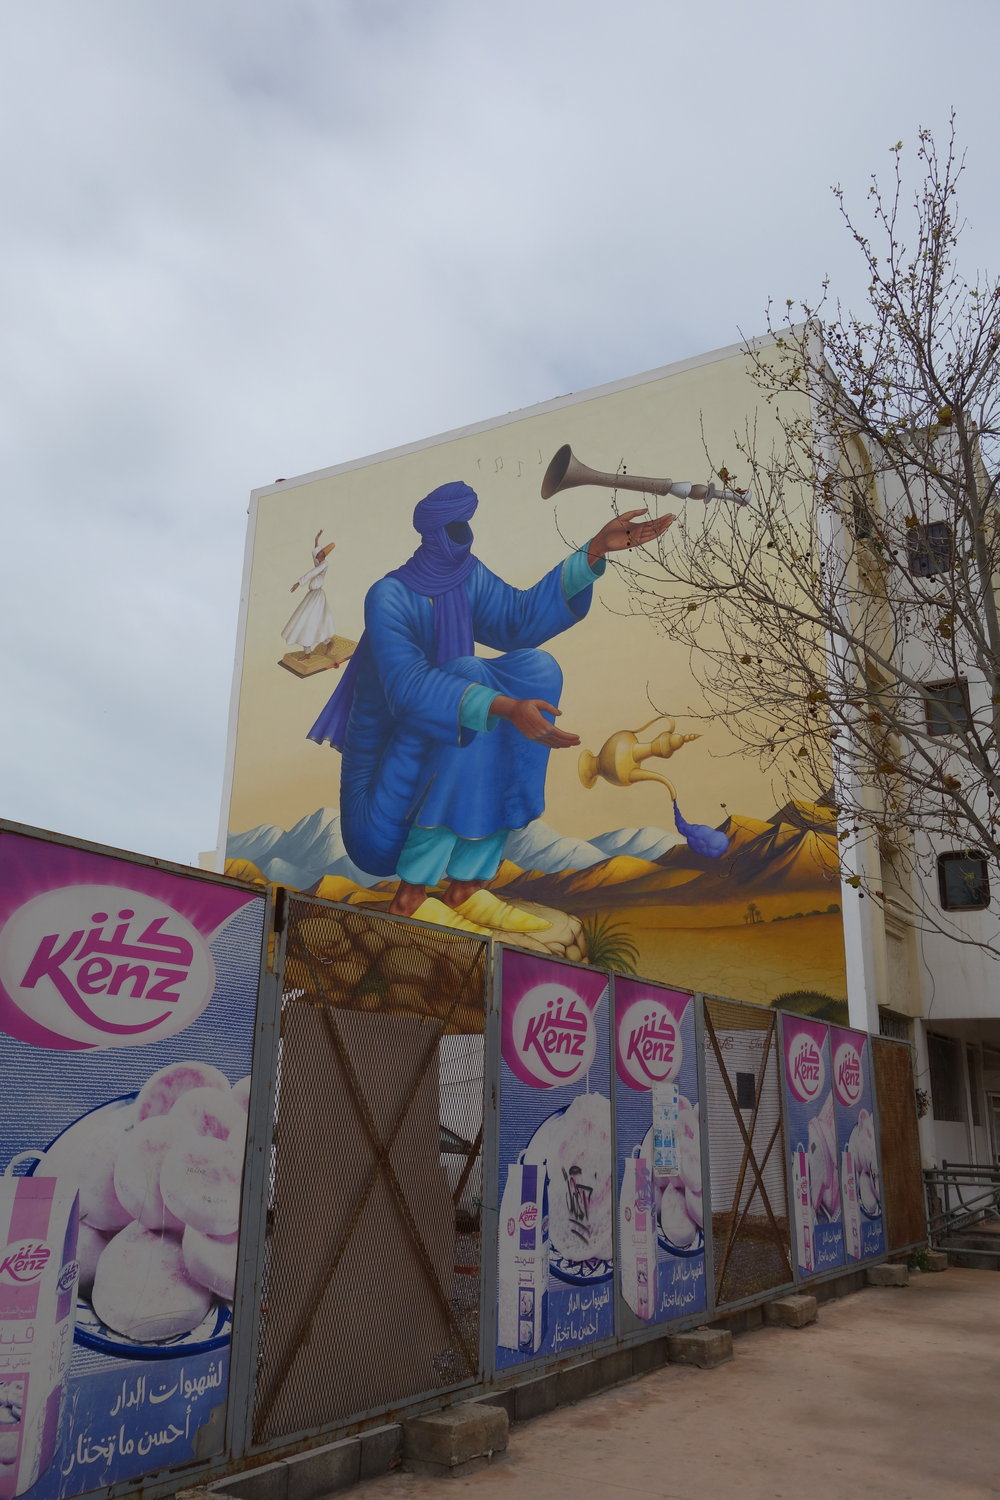 A Moroccan genie, depicted in a mural in Rabat, Morocco.